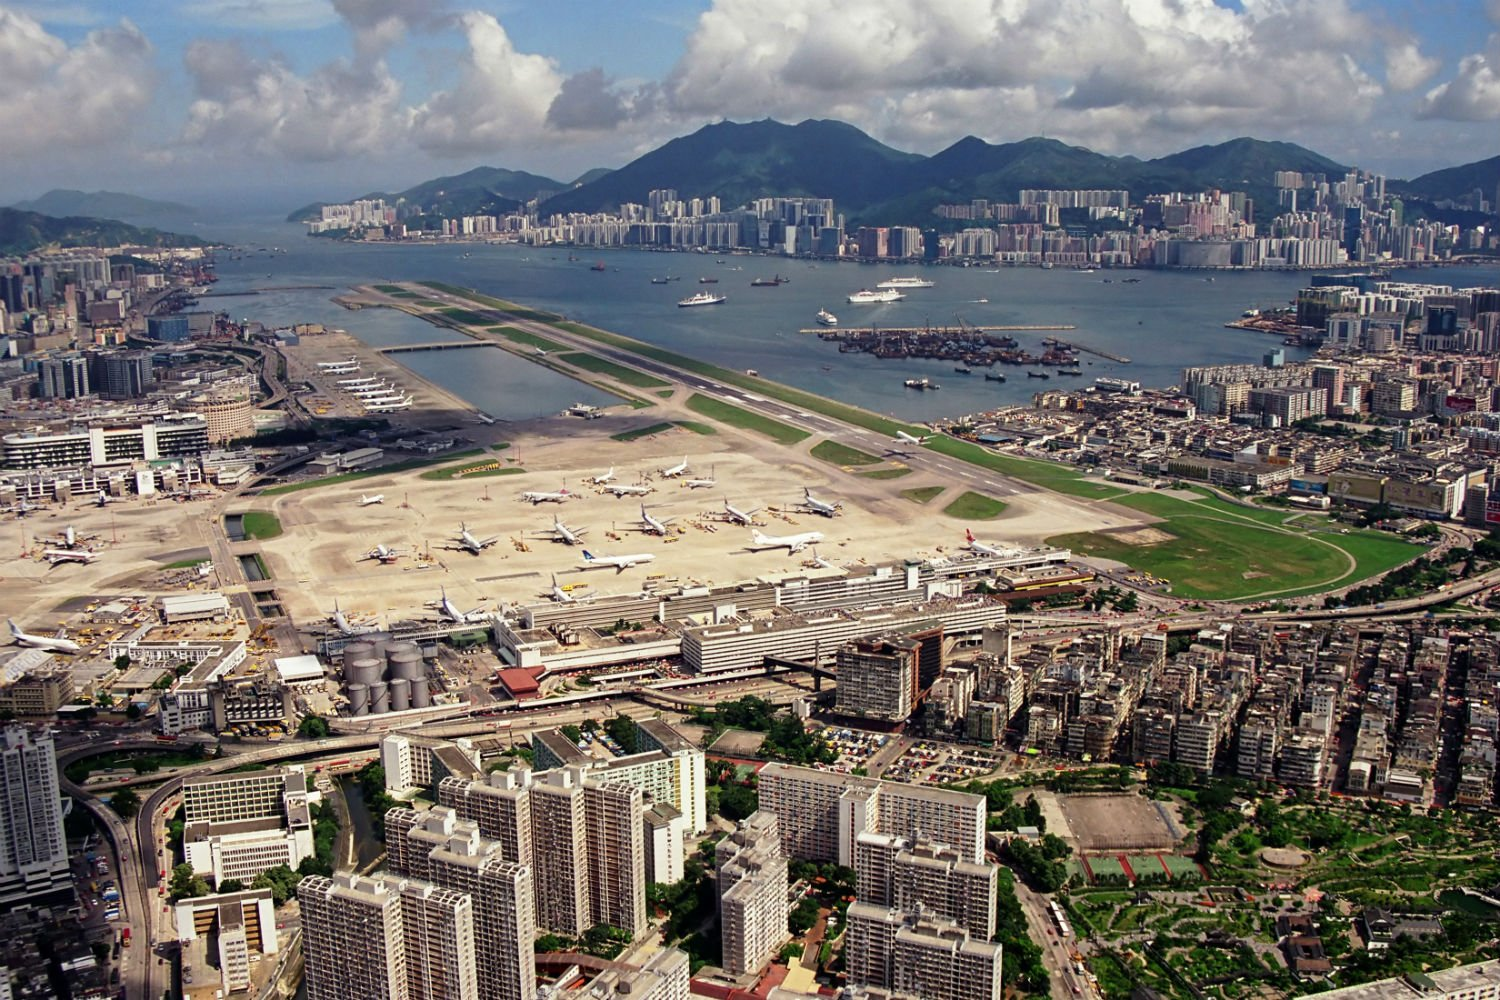 most_dangerous_airports_in_the_world_6_1